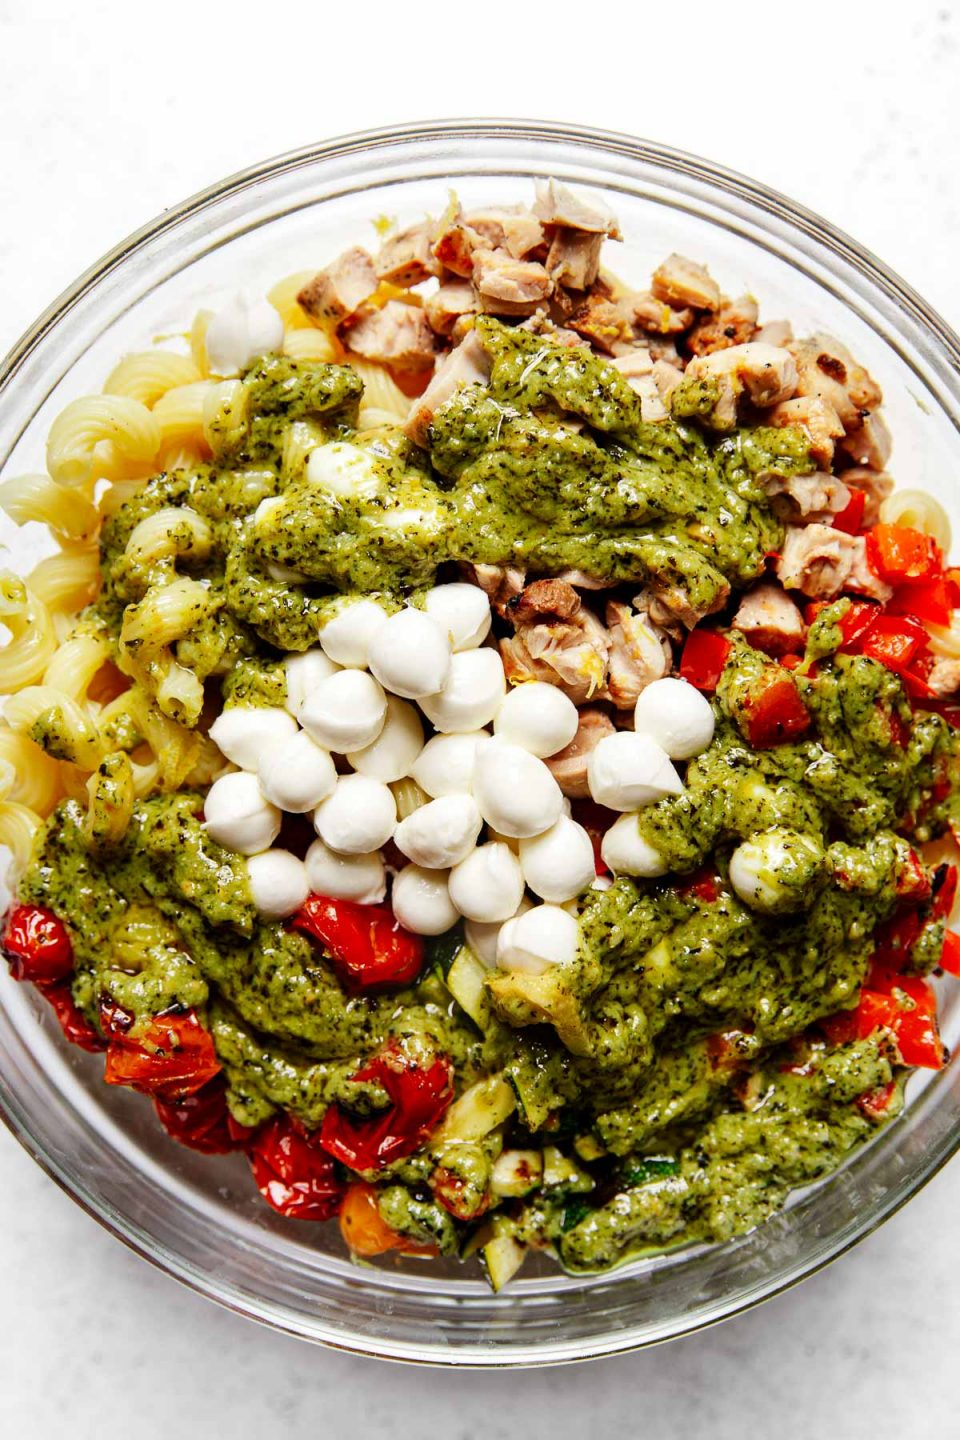 Summer pesto pasta salad ingredients arranged in groups in a large mixing bowl: cavatappi pasta, diced grilled chicken, diced grilled vegetables (bell pepper, zucchini & tomatoes), fresh mozzarella pearls, topped with bright green pesto sauce.